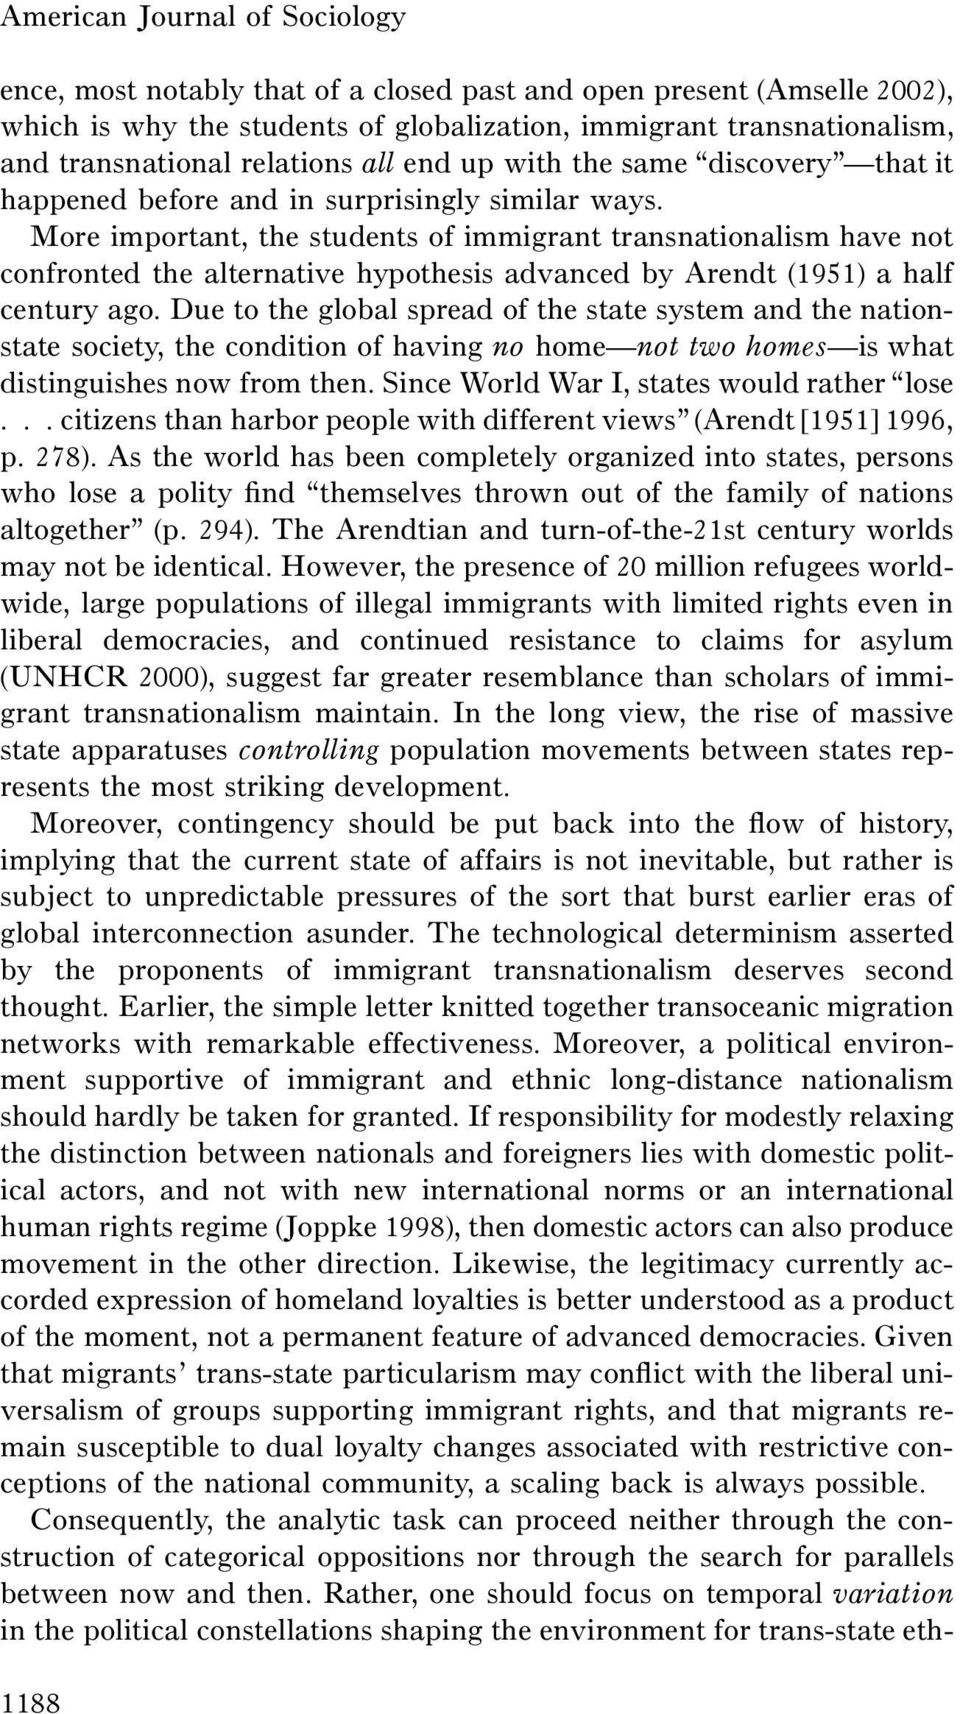 More important, the students of immigrant transnationalism have not confronted the alternative hypothesis advanced by Arendt (1951) a half century ago.